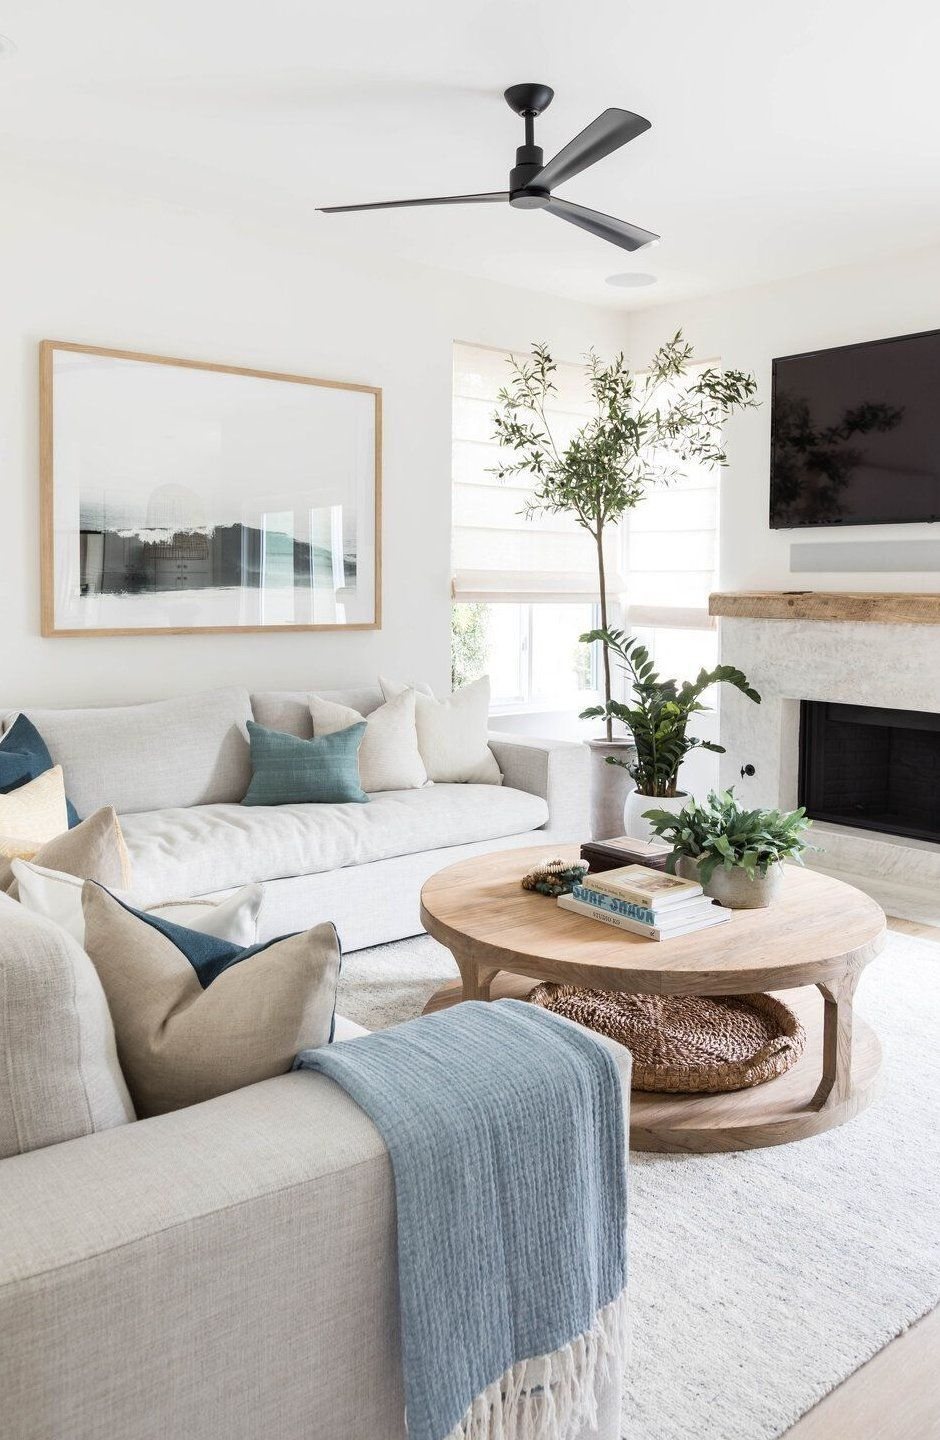 Home Decoration Romantic Home Decoration Romantic Fireplaceremodel Home Decoration Romantic Home Dec In 2020 Neutral Living Room Home Living Room Living Room Colors